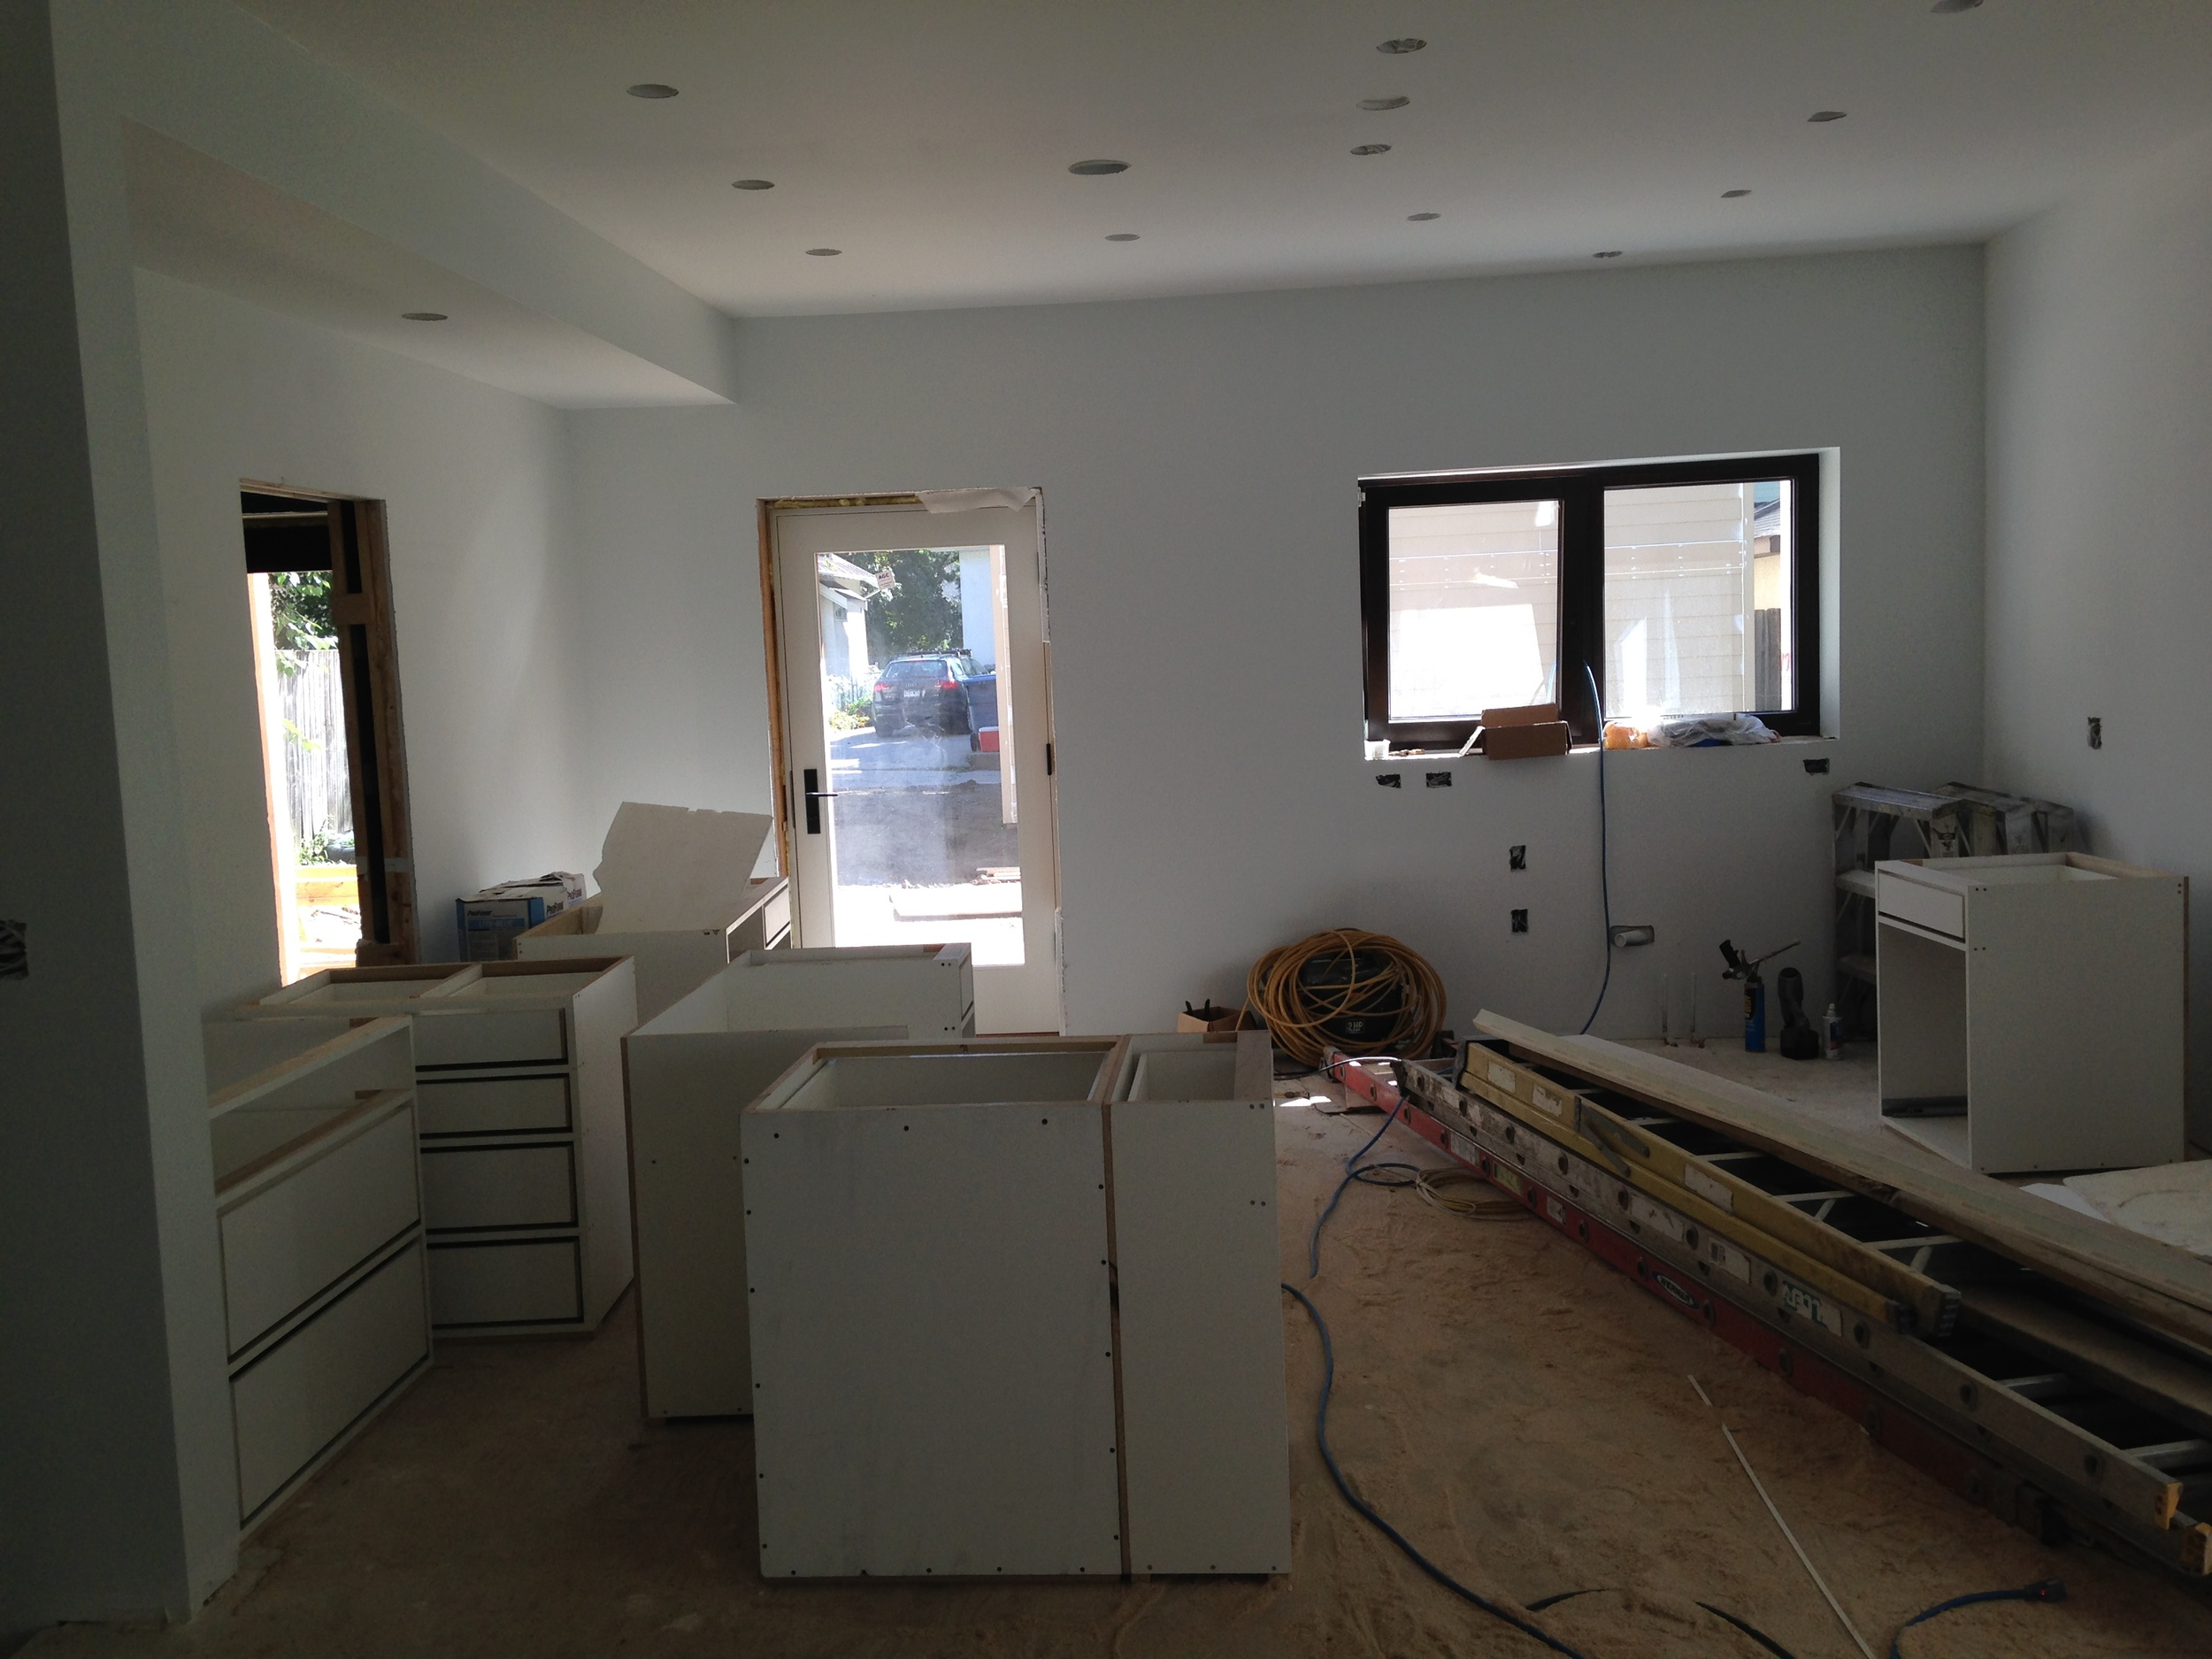 Looking toward the kitchen area of the main room